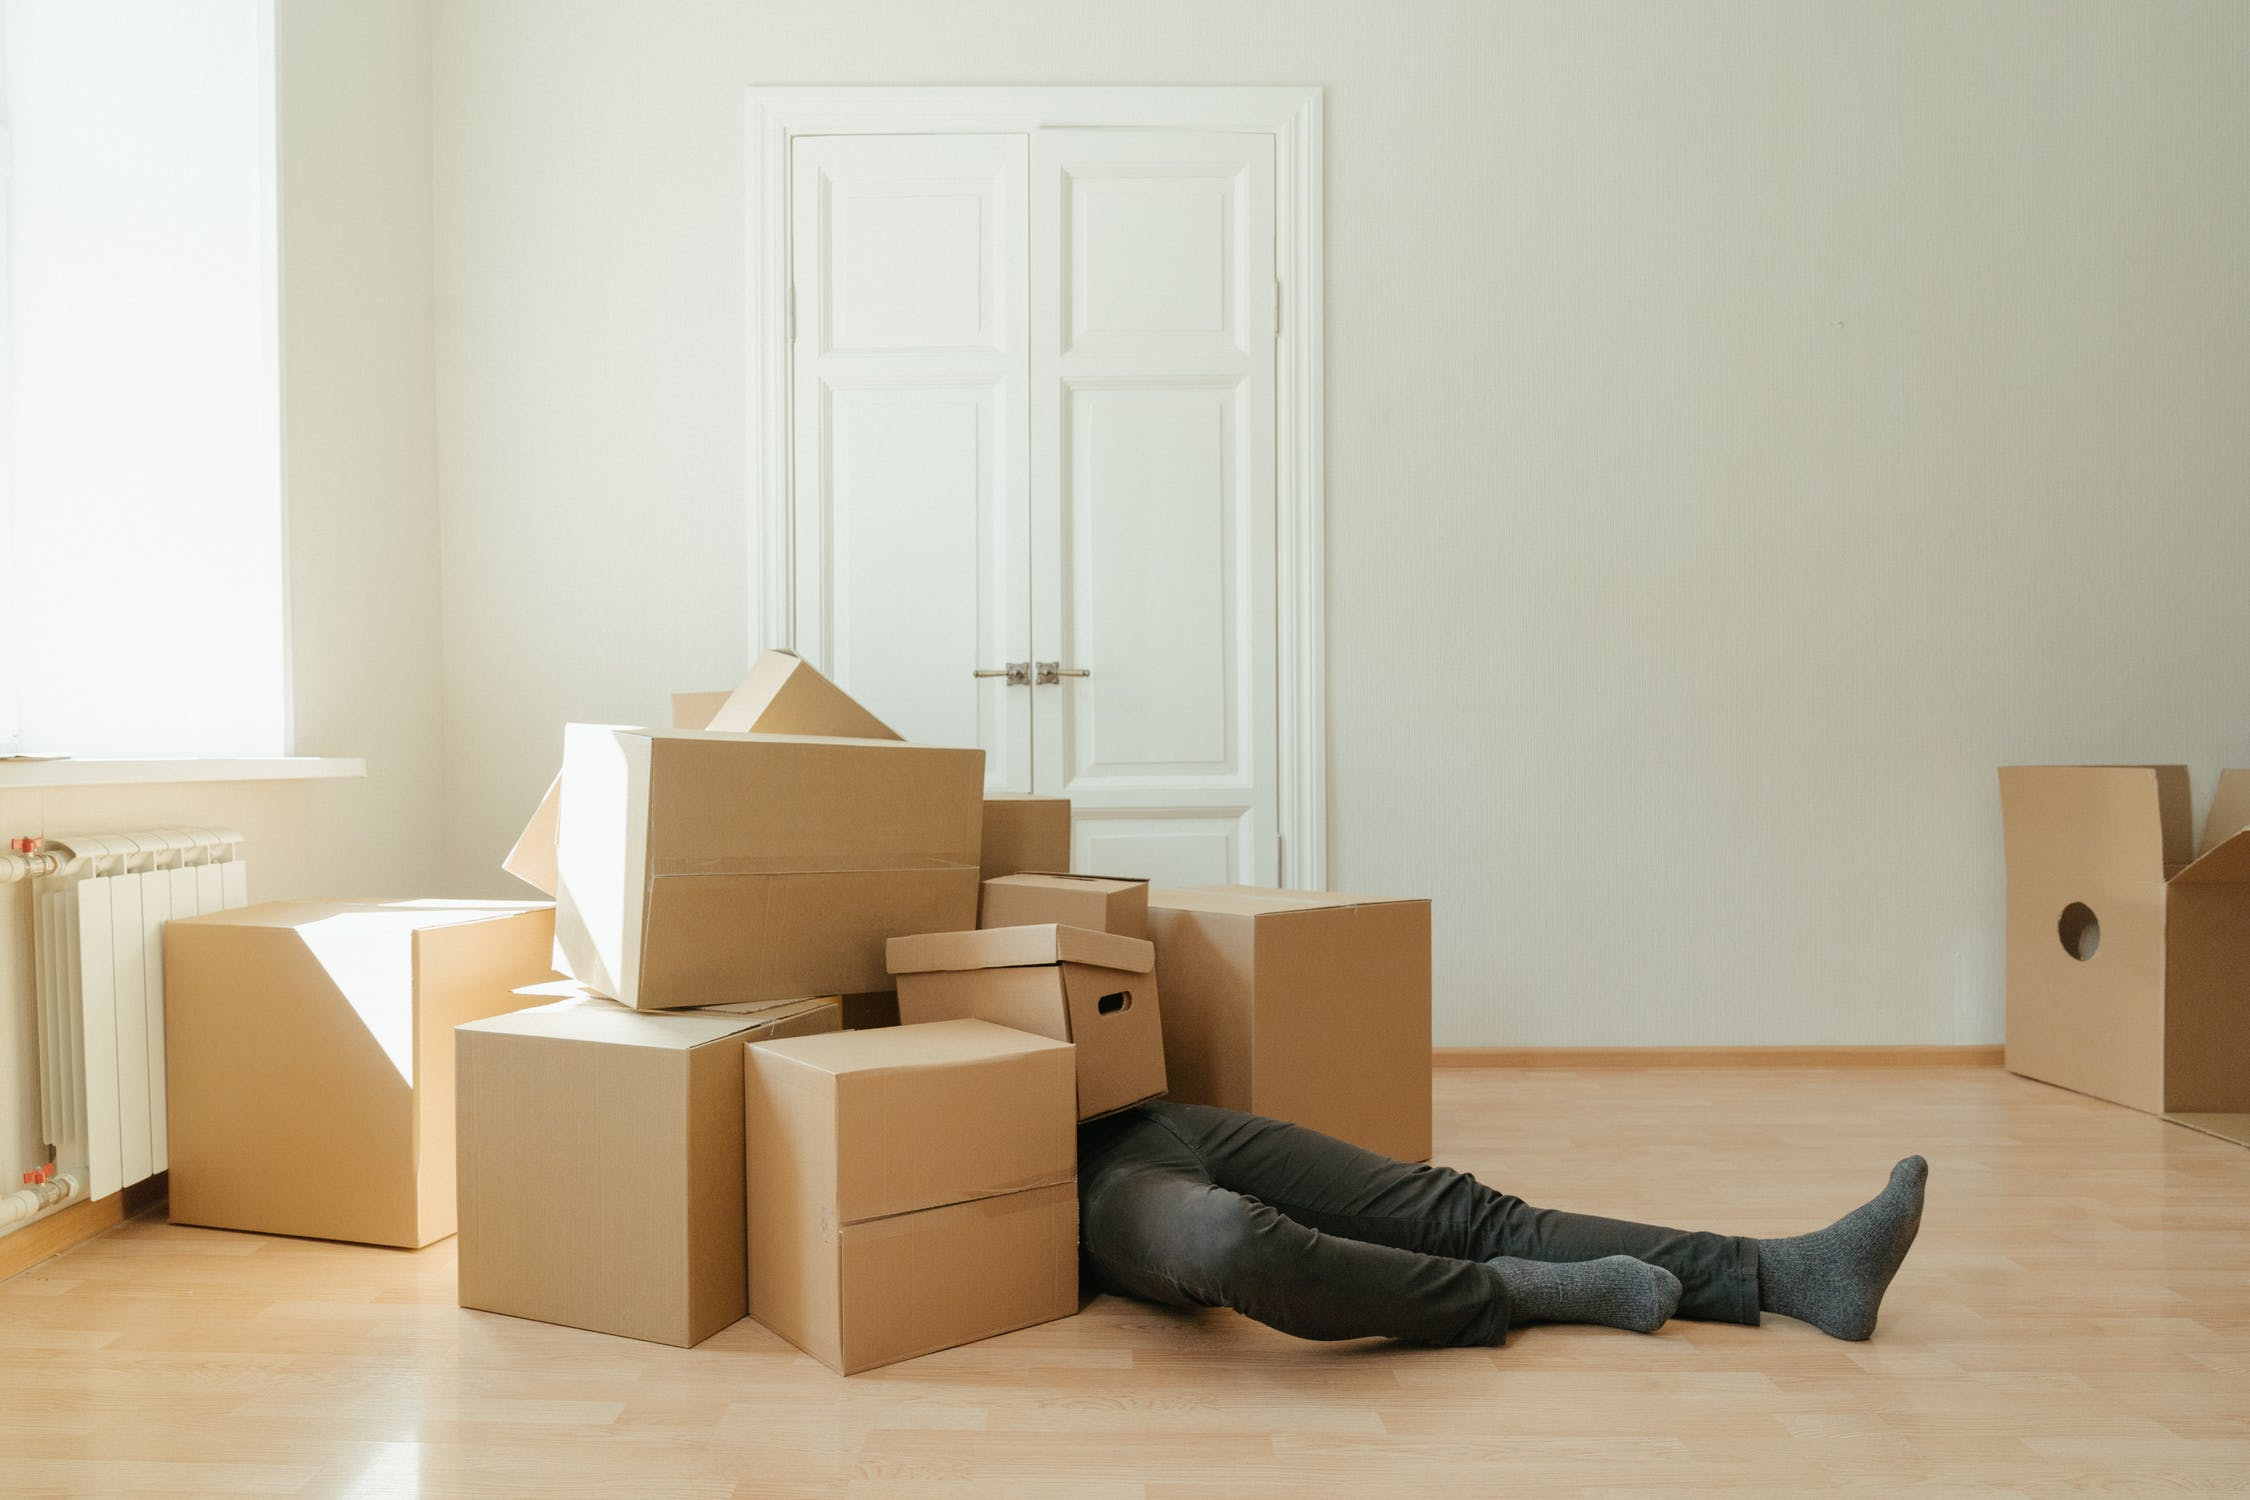 boxes when you evict a tenant